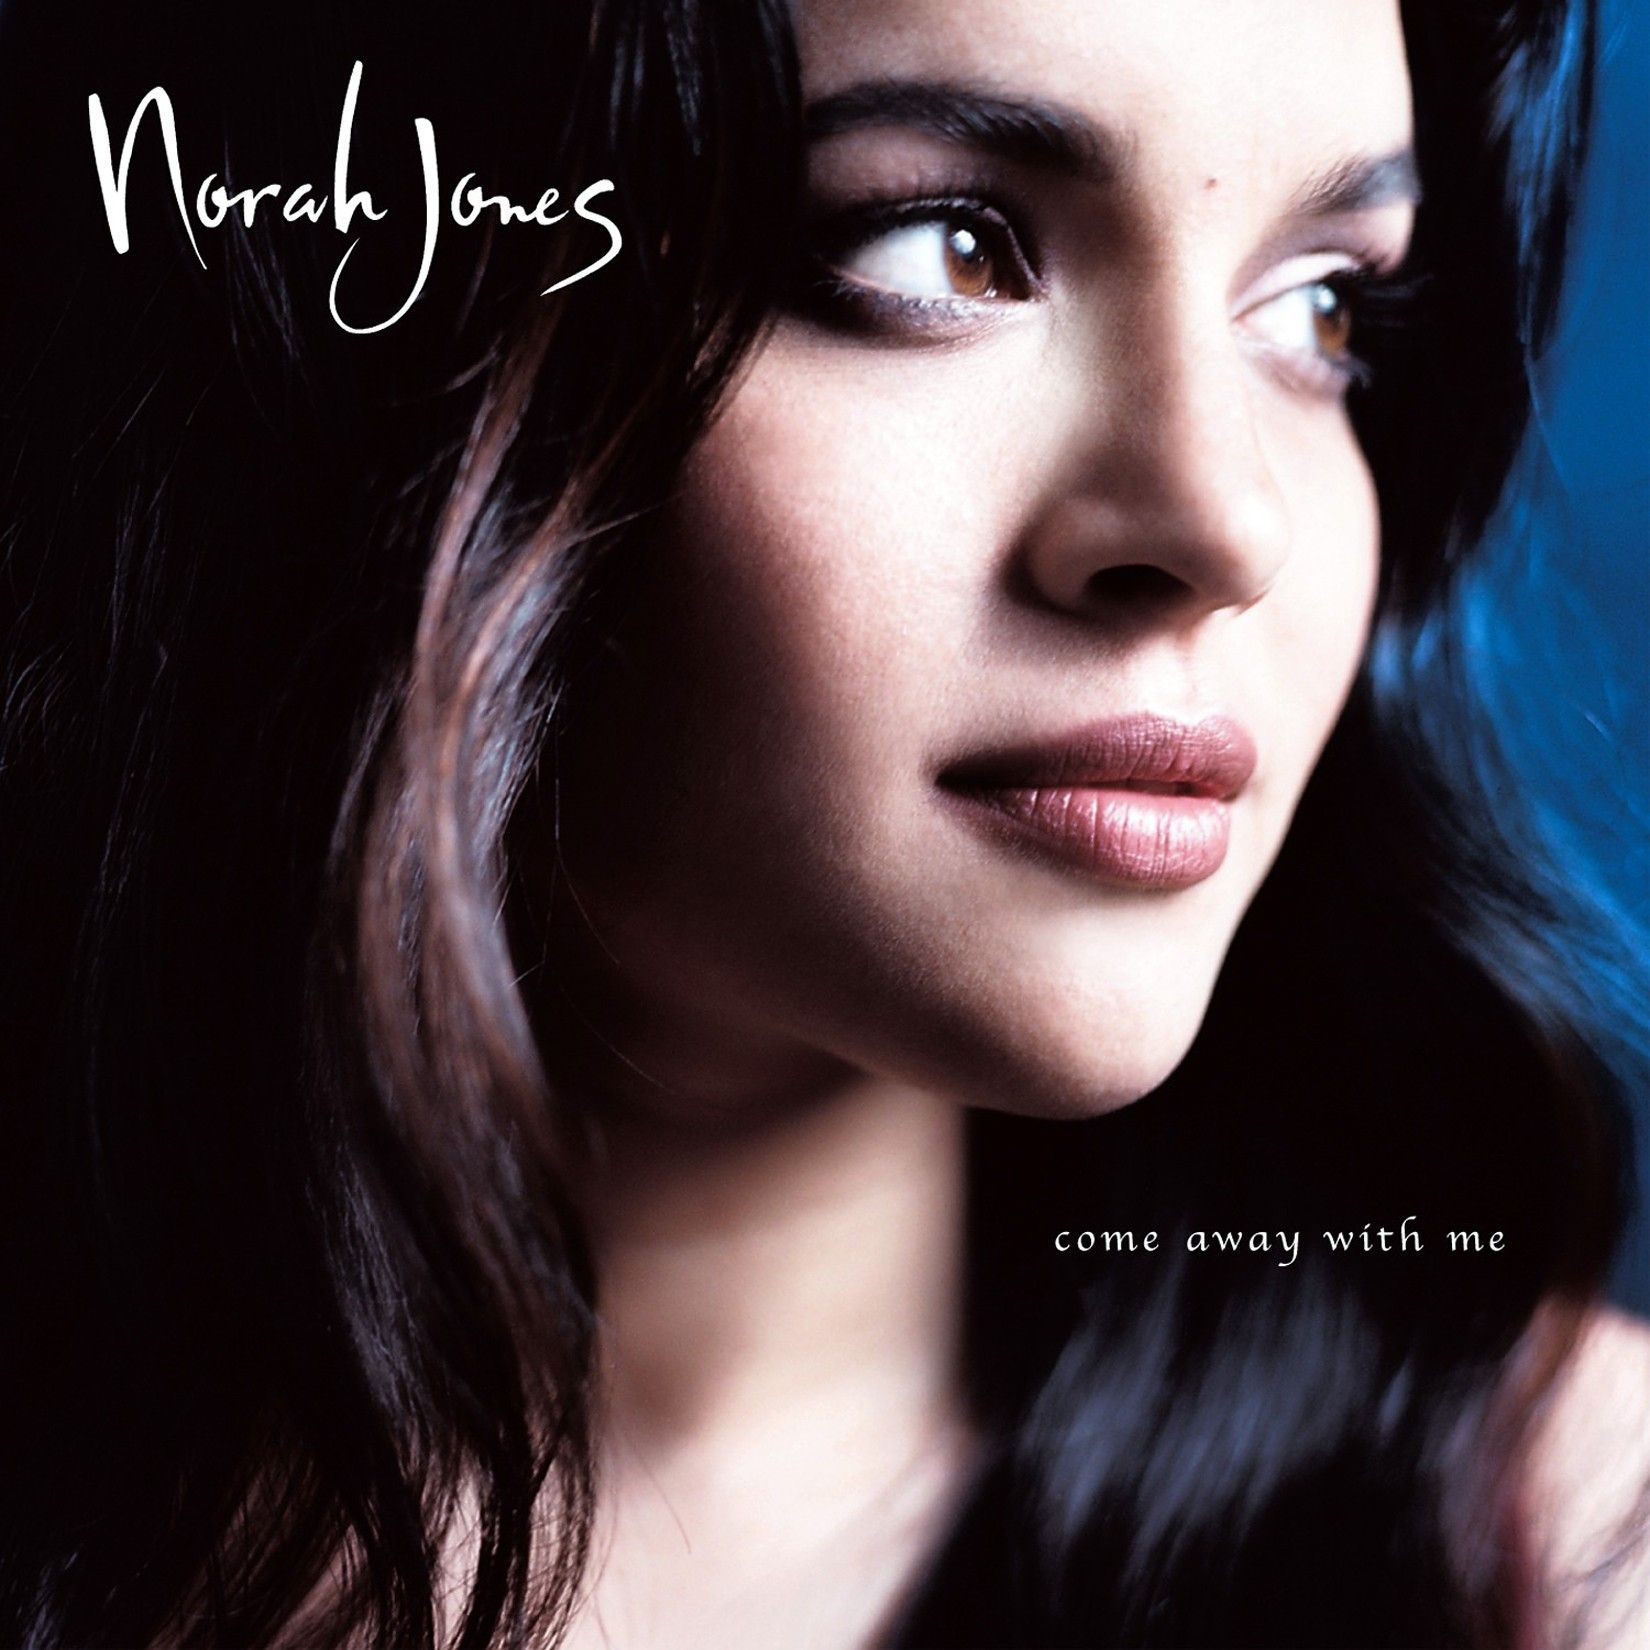 Norah Jones - Come Away With Me album cover